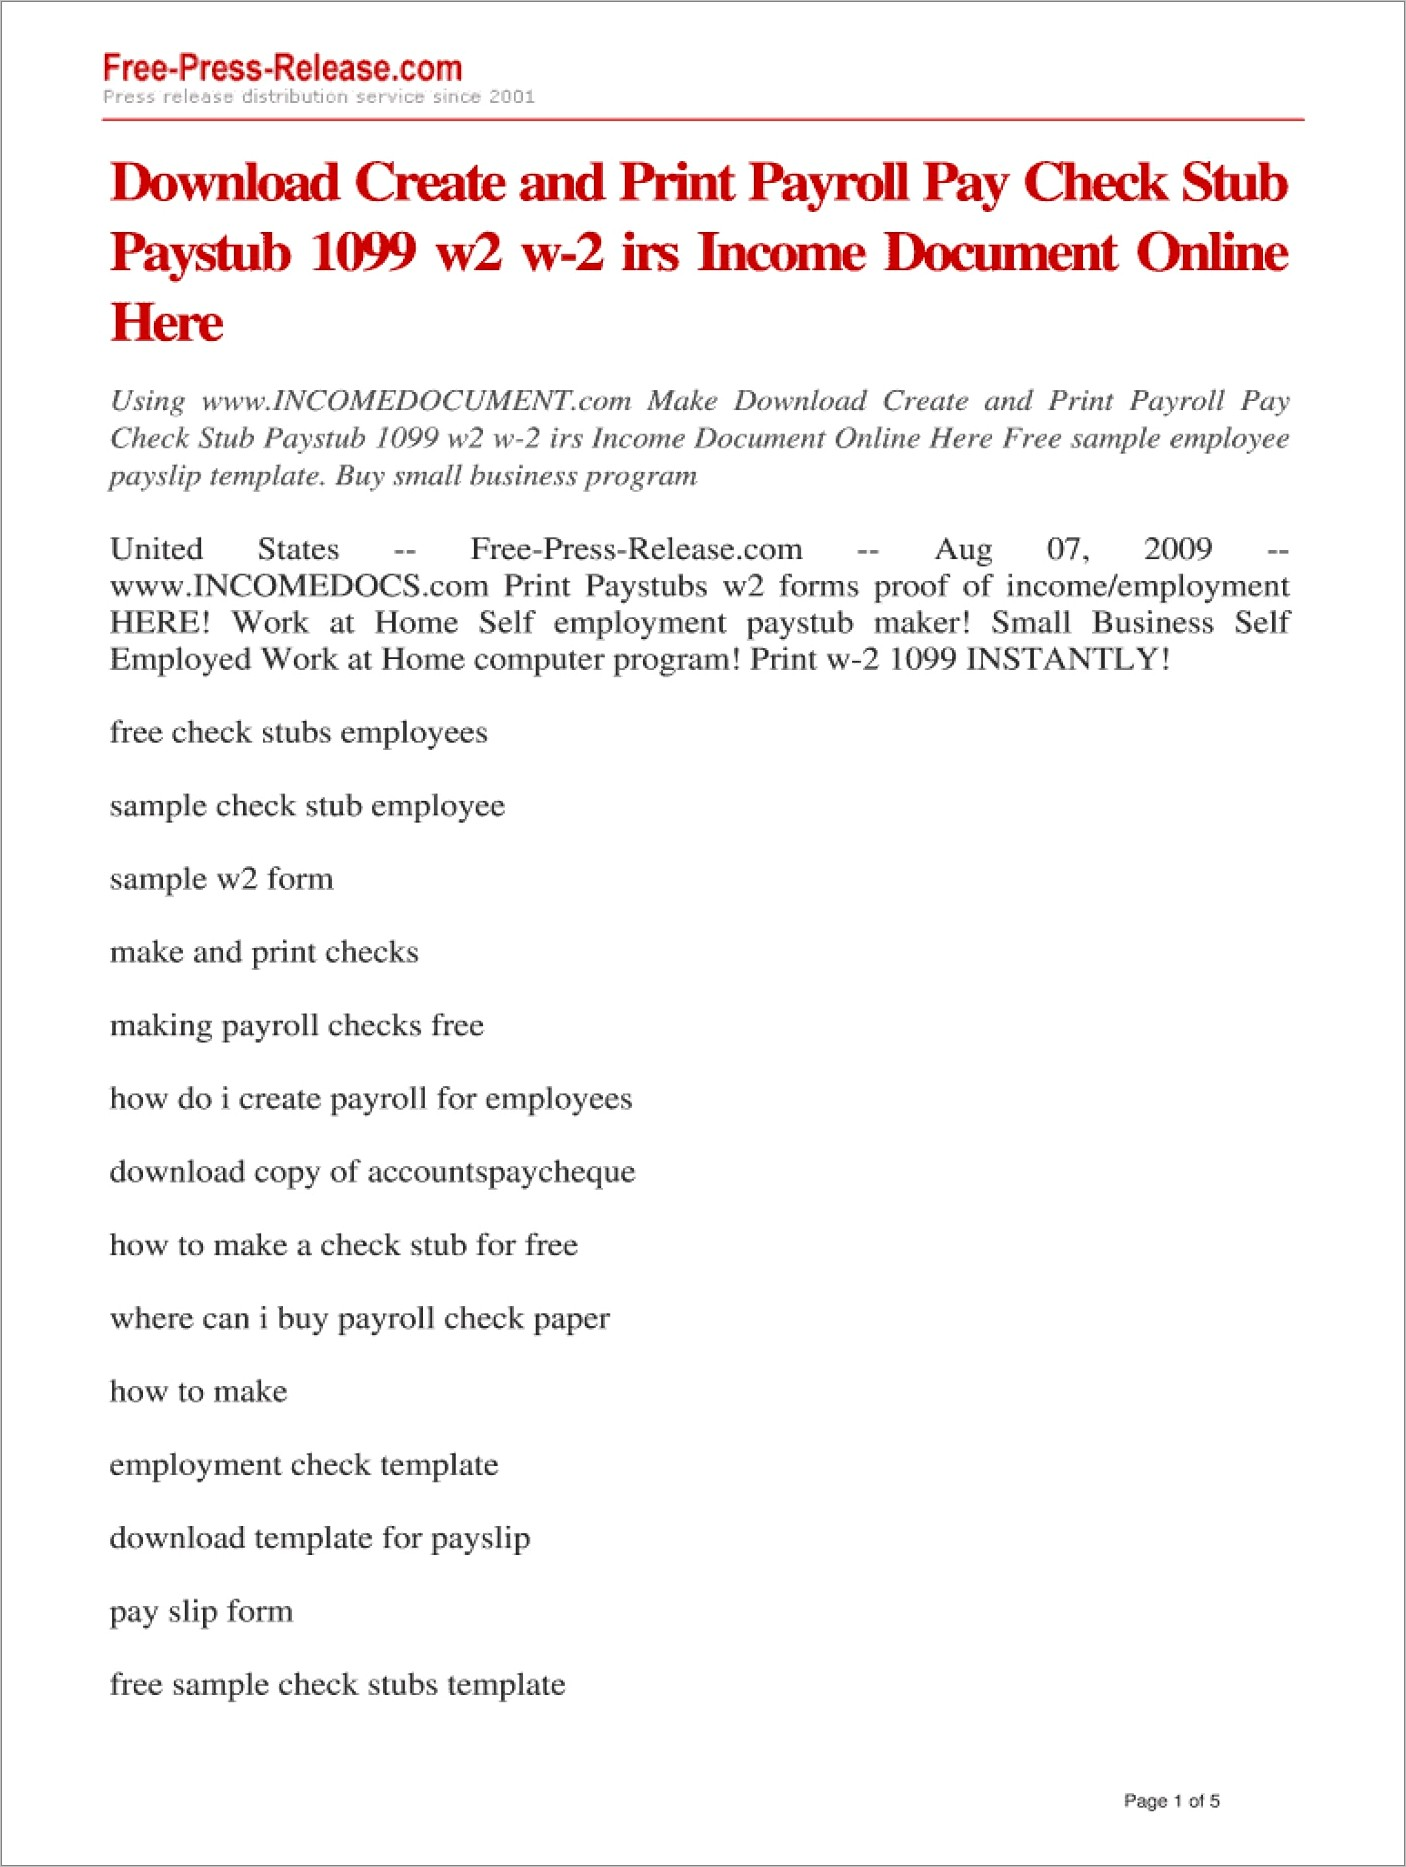 Free Paycheck Stubs Template Downloads